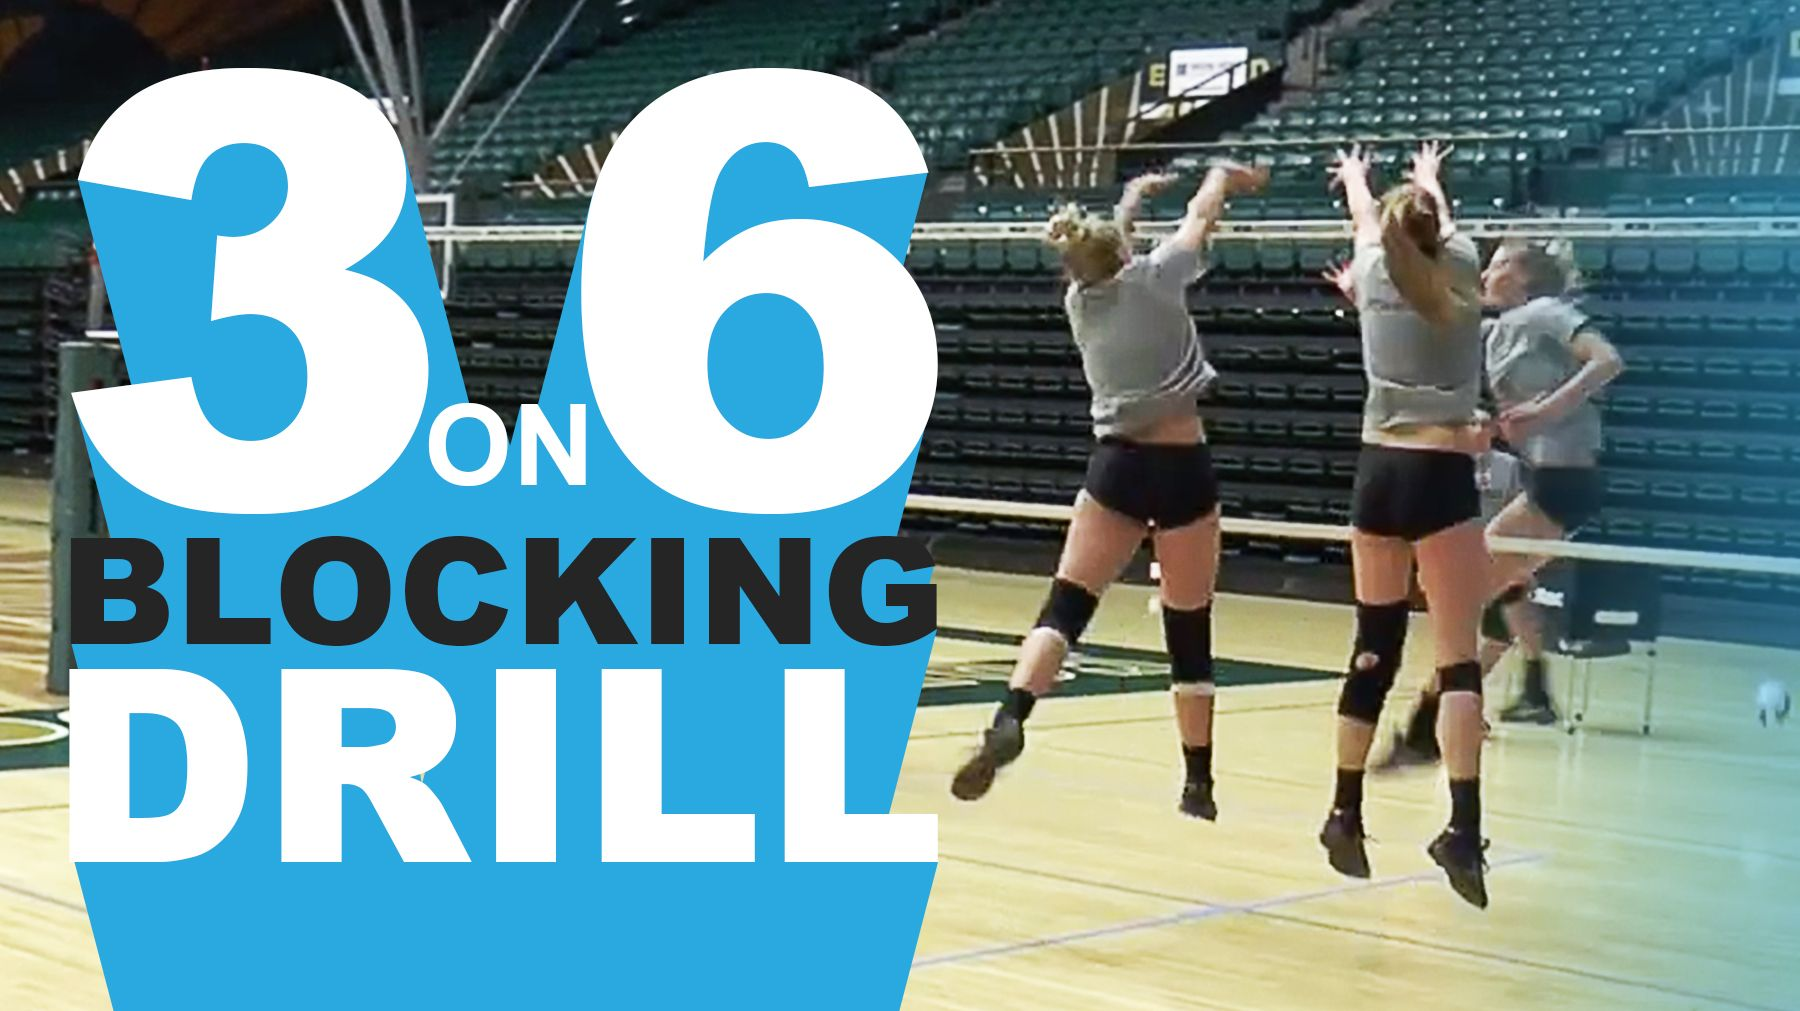 Bolster Defense With 3 On 6 Blocking Drill The Art Of Coaching Volleyball Coaching Volleyball Volleyball Skills Volleyball Training